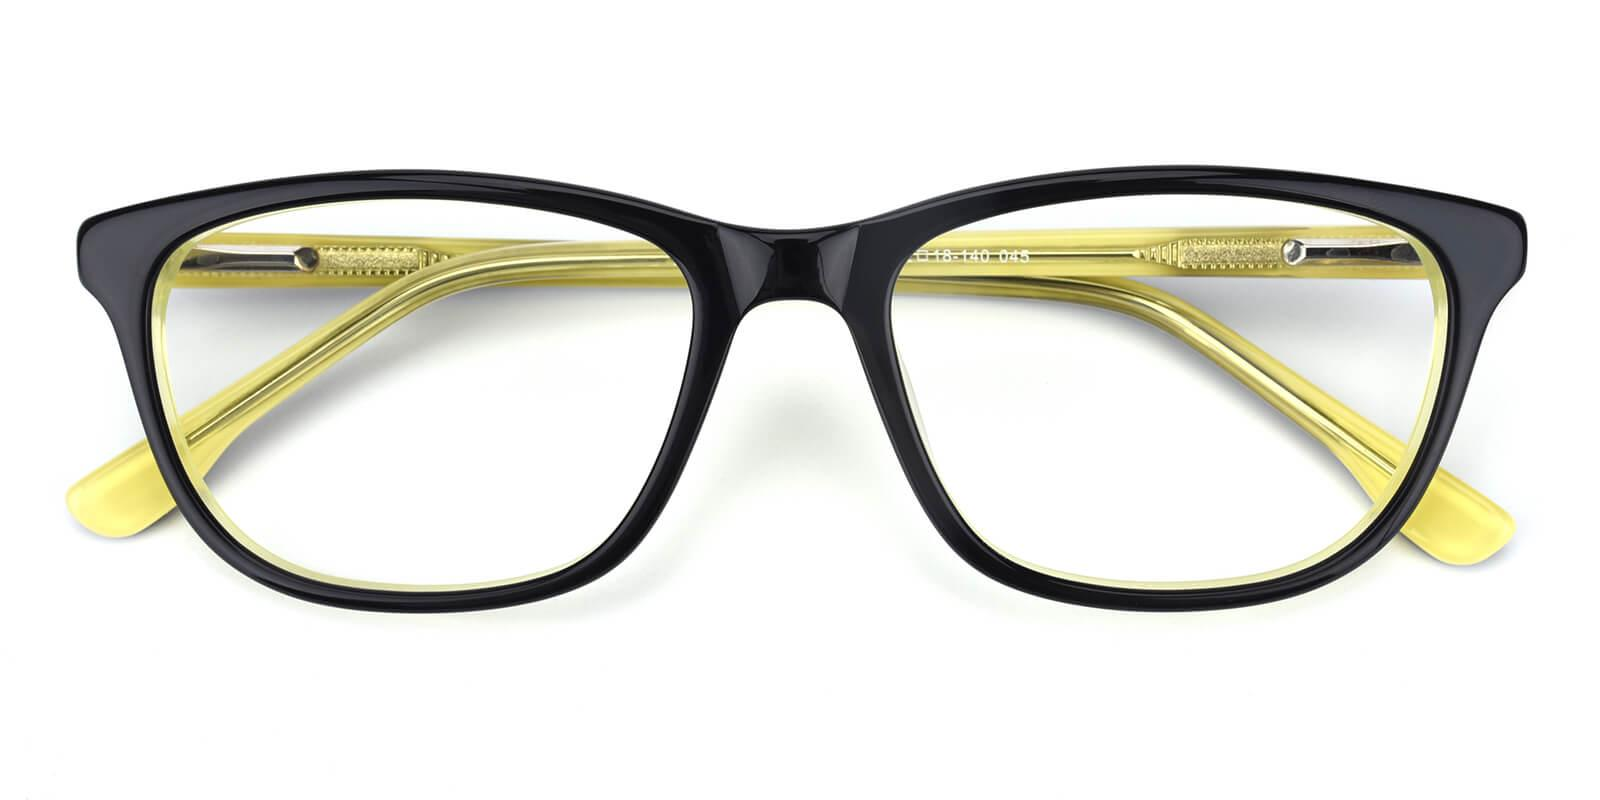 Emblem-Yellow-Square / Cat-Acetate-Eyeglasses-detail